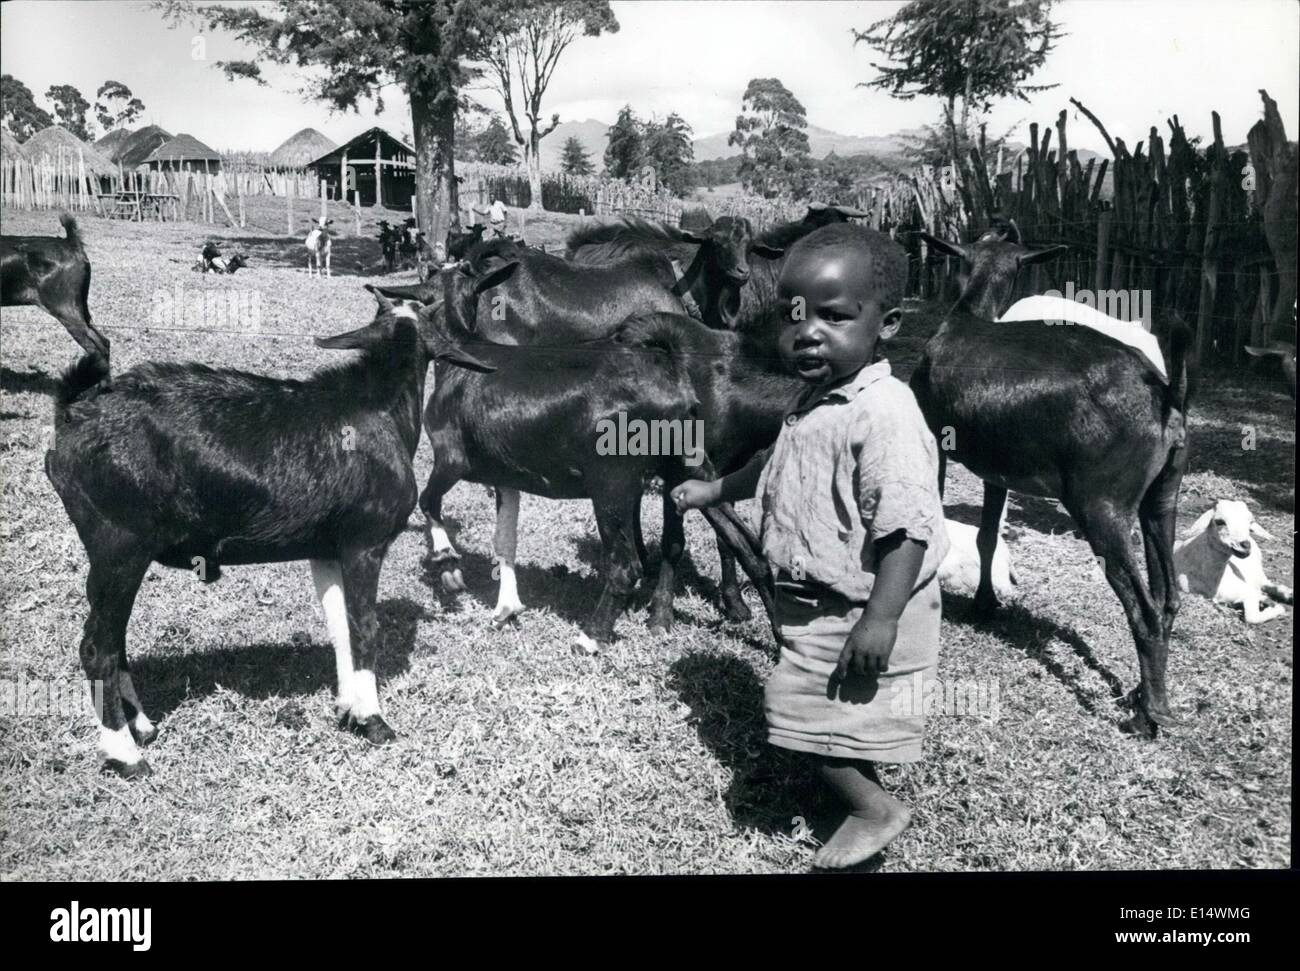 Apr. 18, 2012 - Nijirs Waturu the old Chief's youngest son-at the age of three-in true African tradition learns herding sheep in young years. - Stock Image